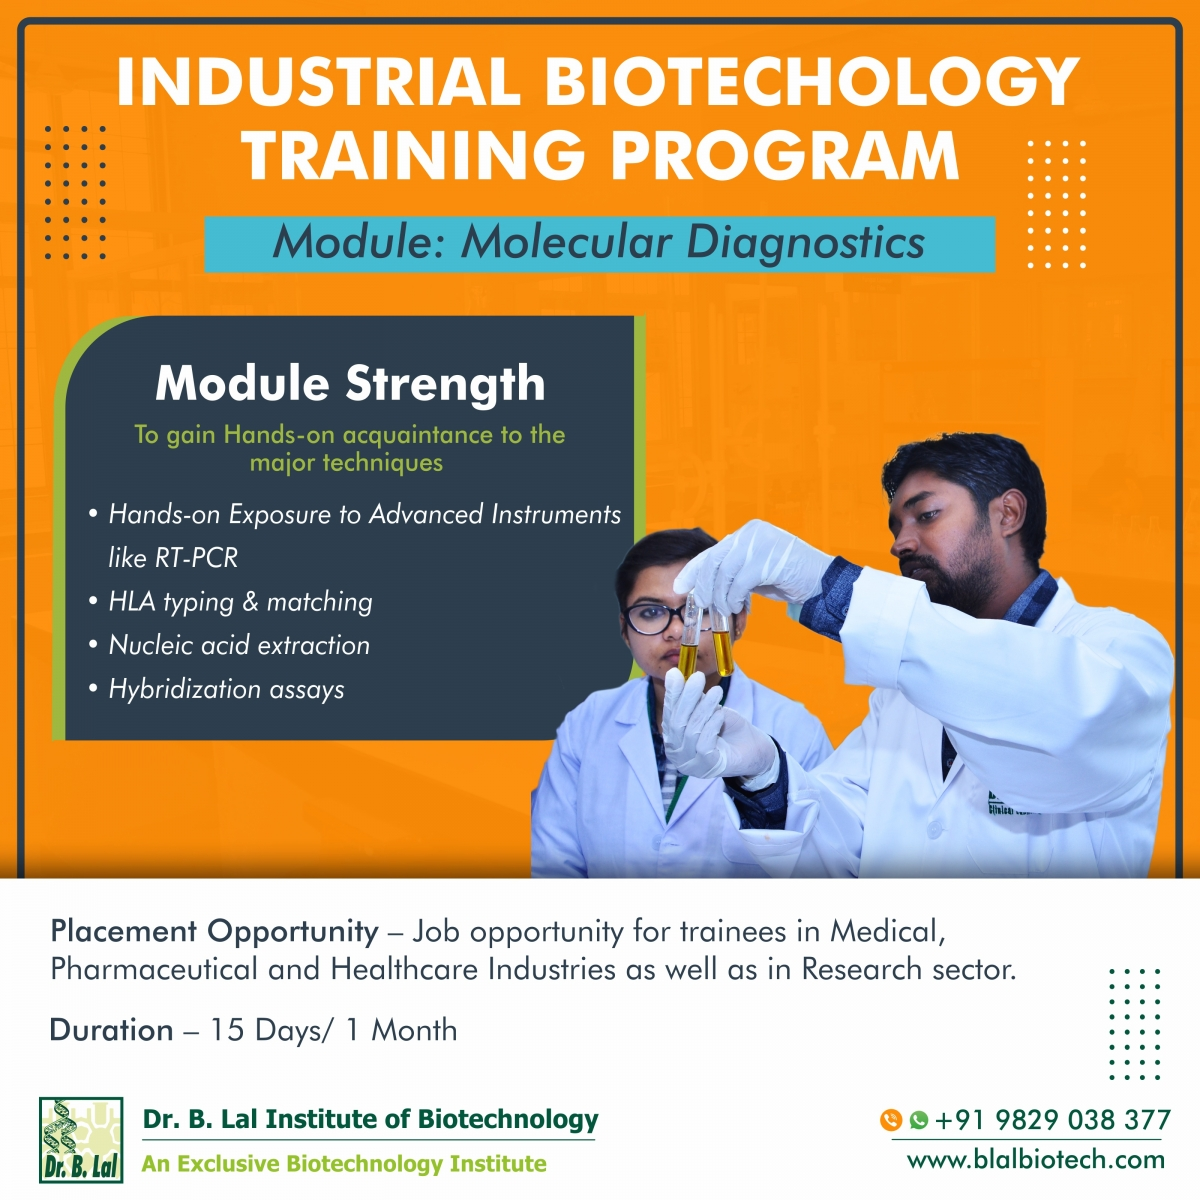 Industrial Biotechnology Training Program | Module: Molecular Diagnostics